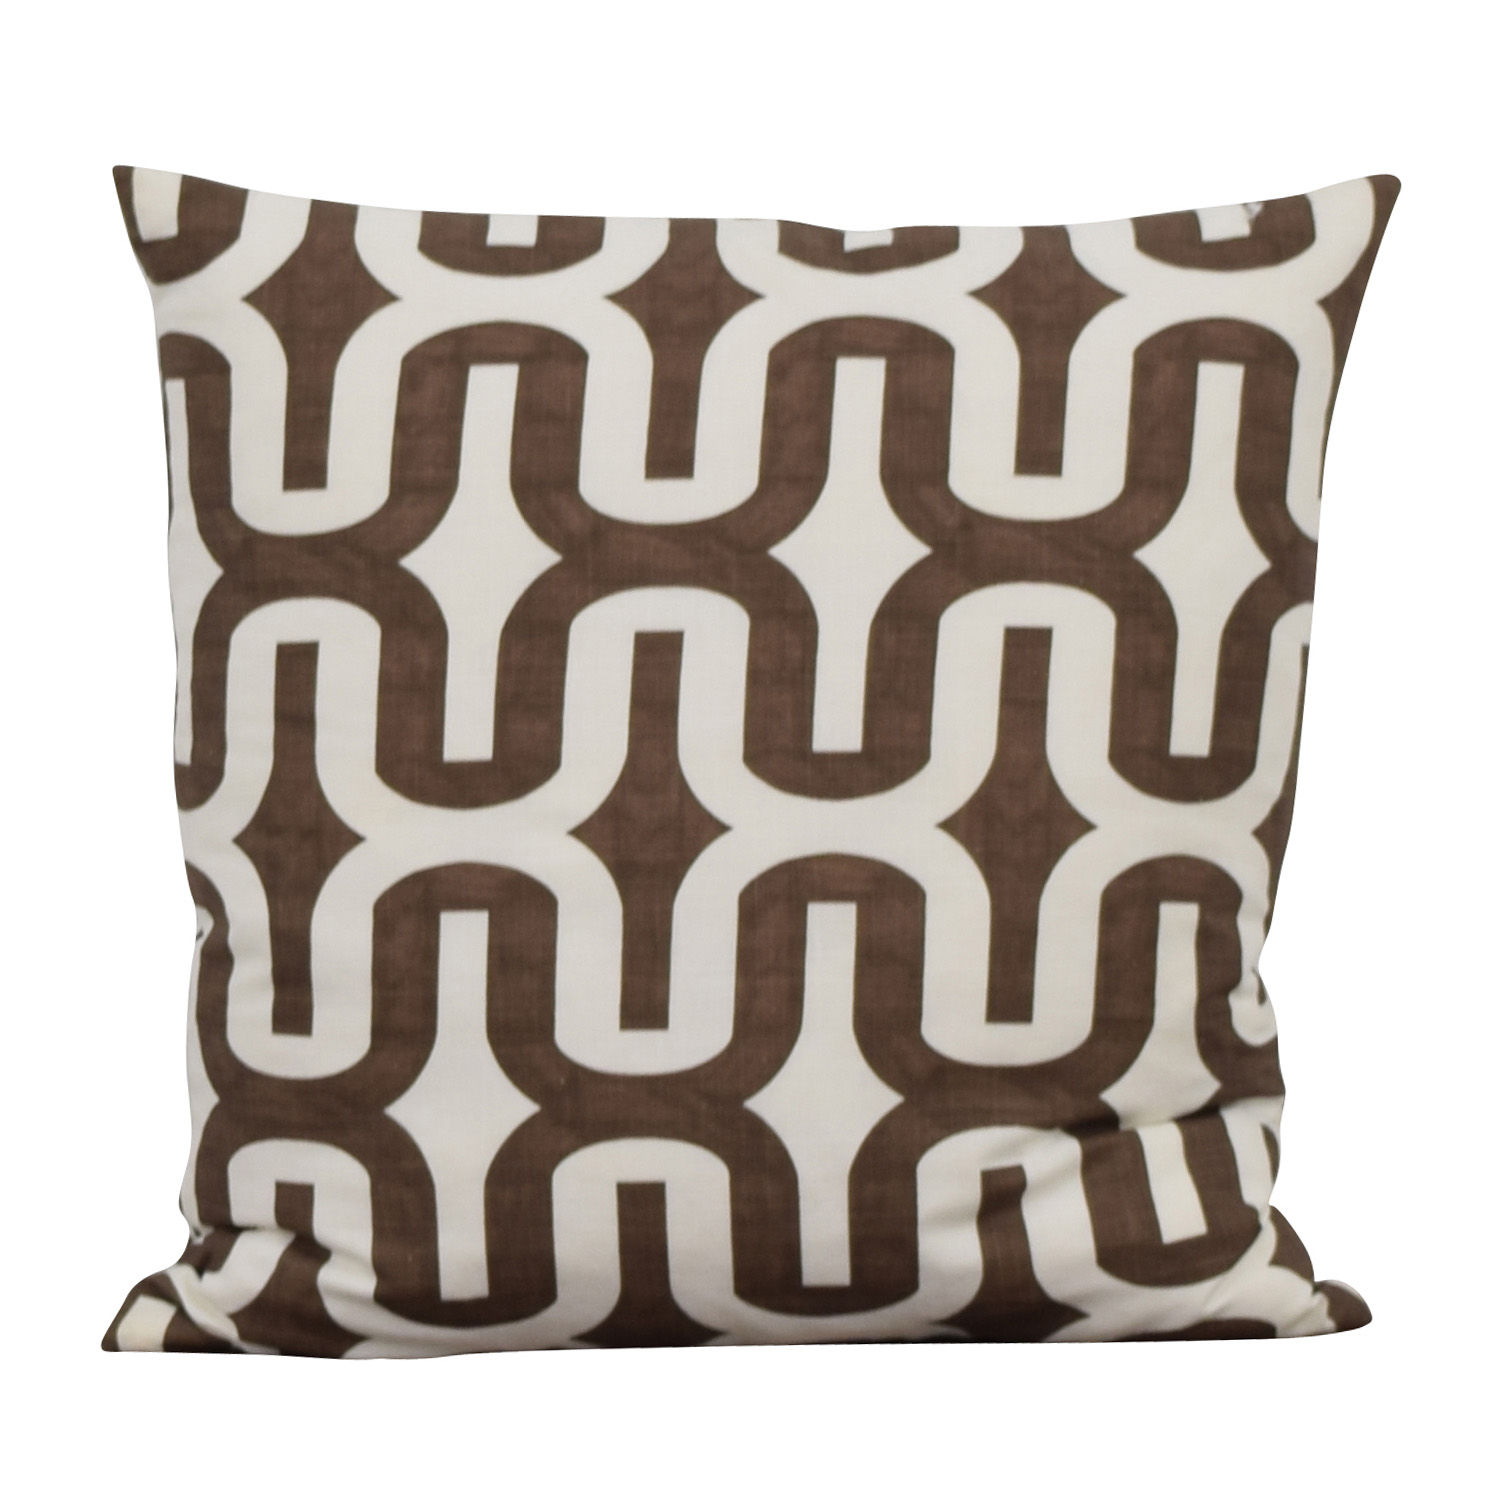 shop Brown and White Decorative Toss Pillows Decorative Accents